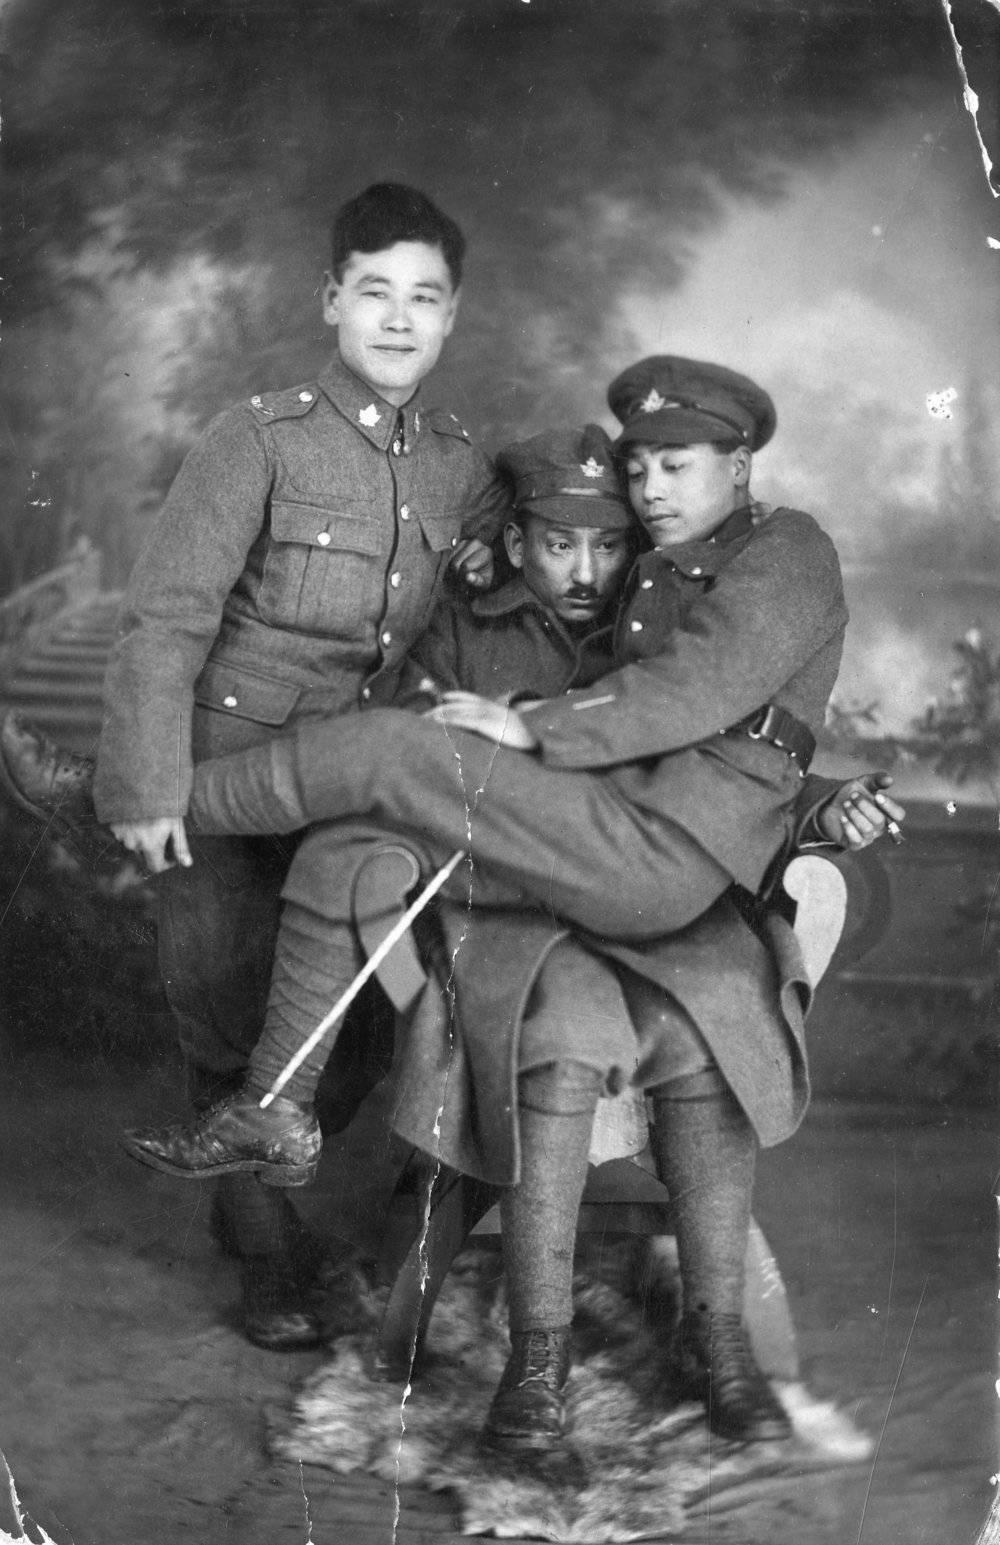 Pte. Okutake and friends pose for a photograph  Galt Museum & Archives accession number: P20171056001